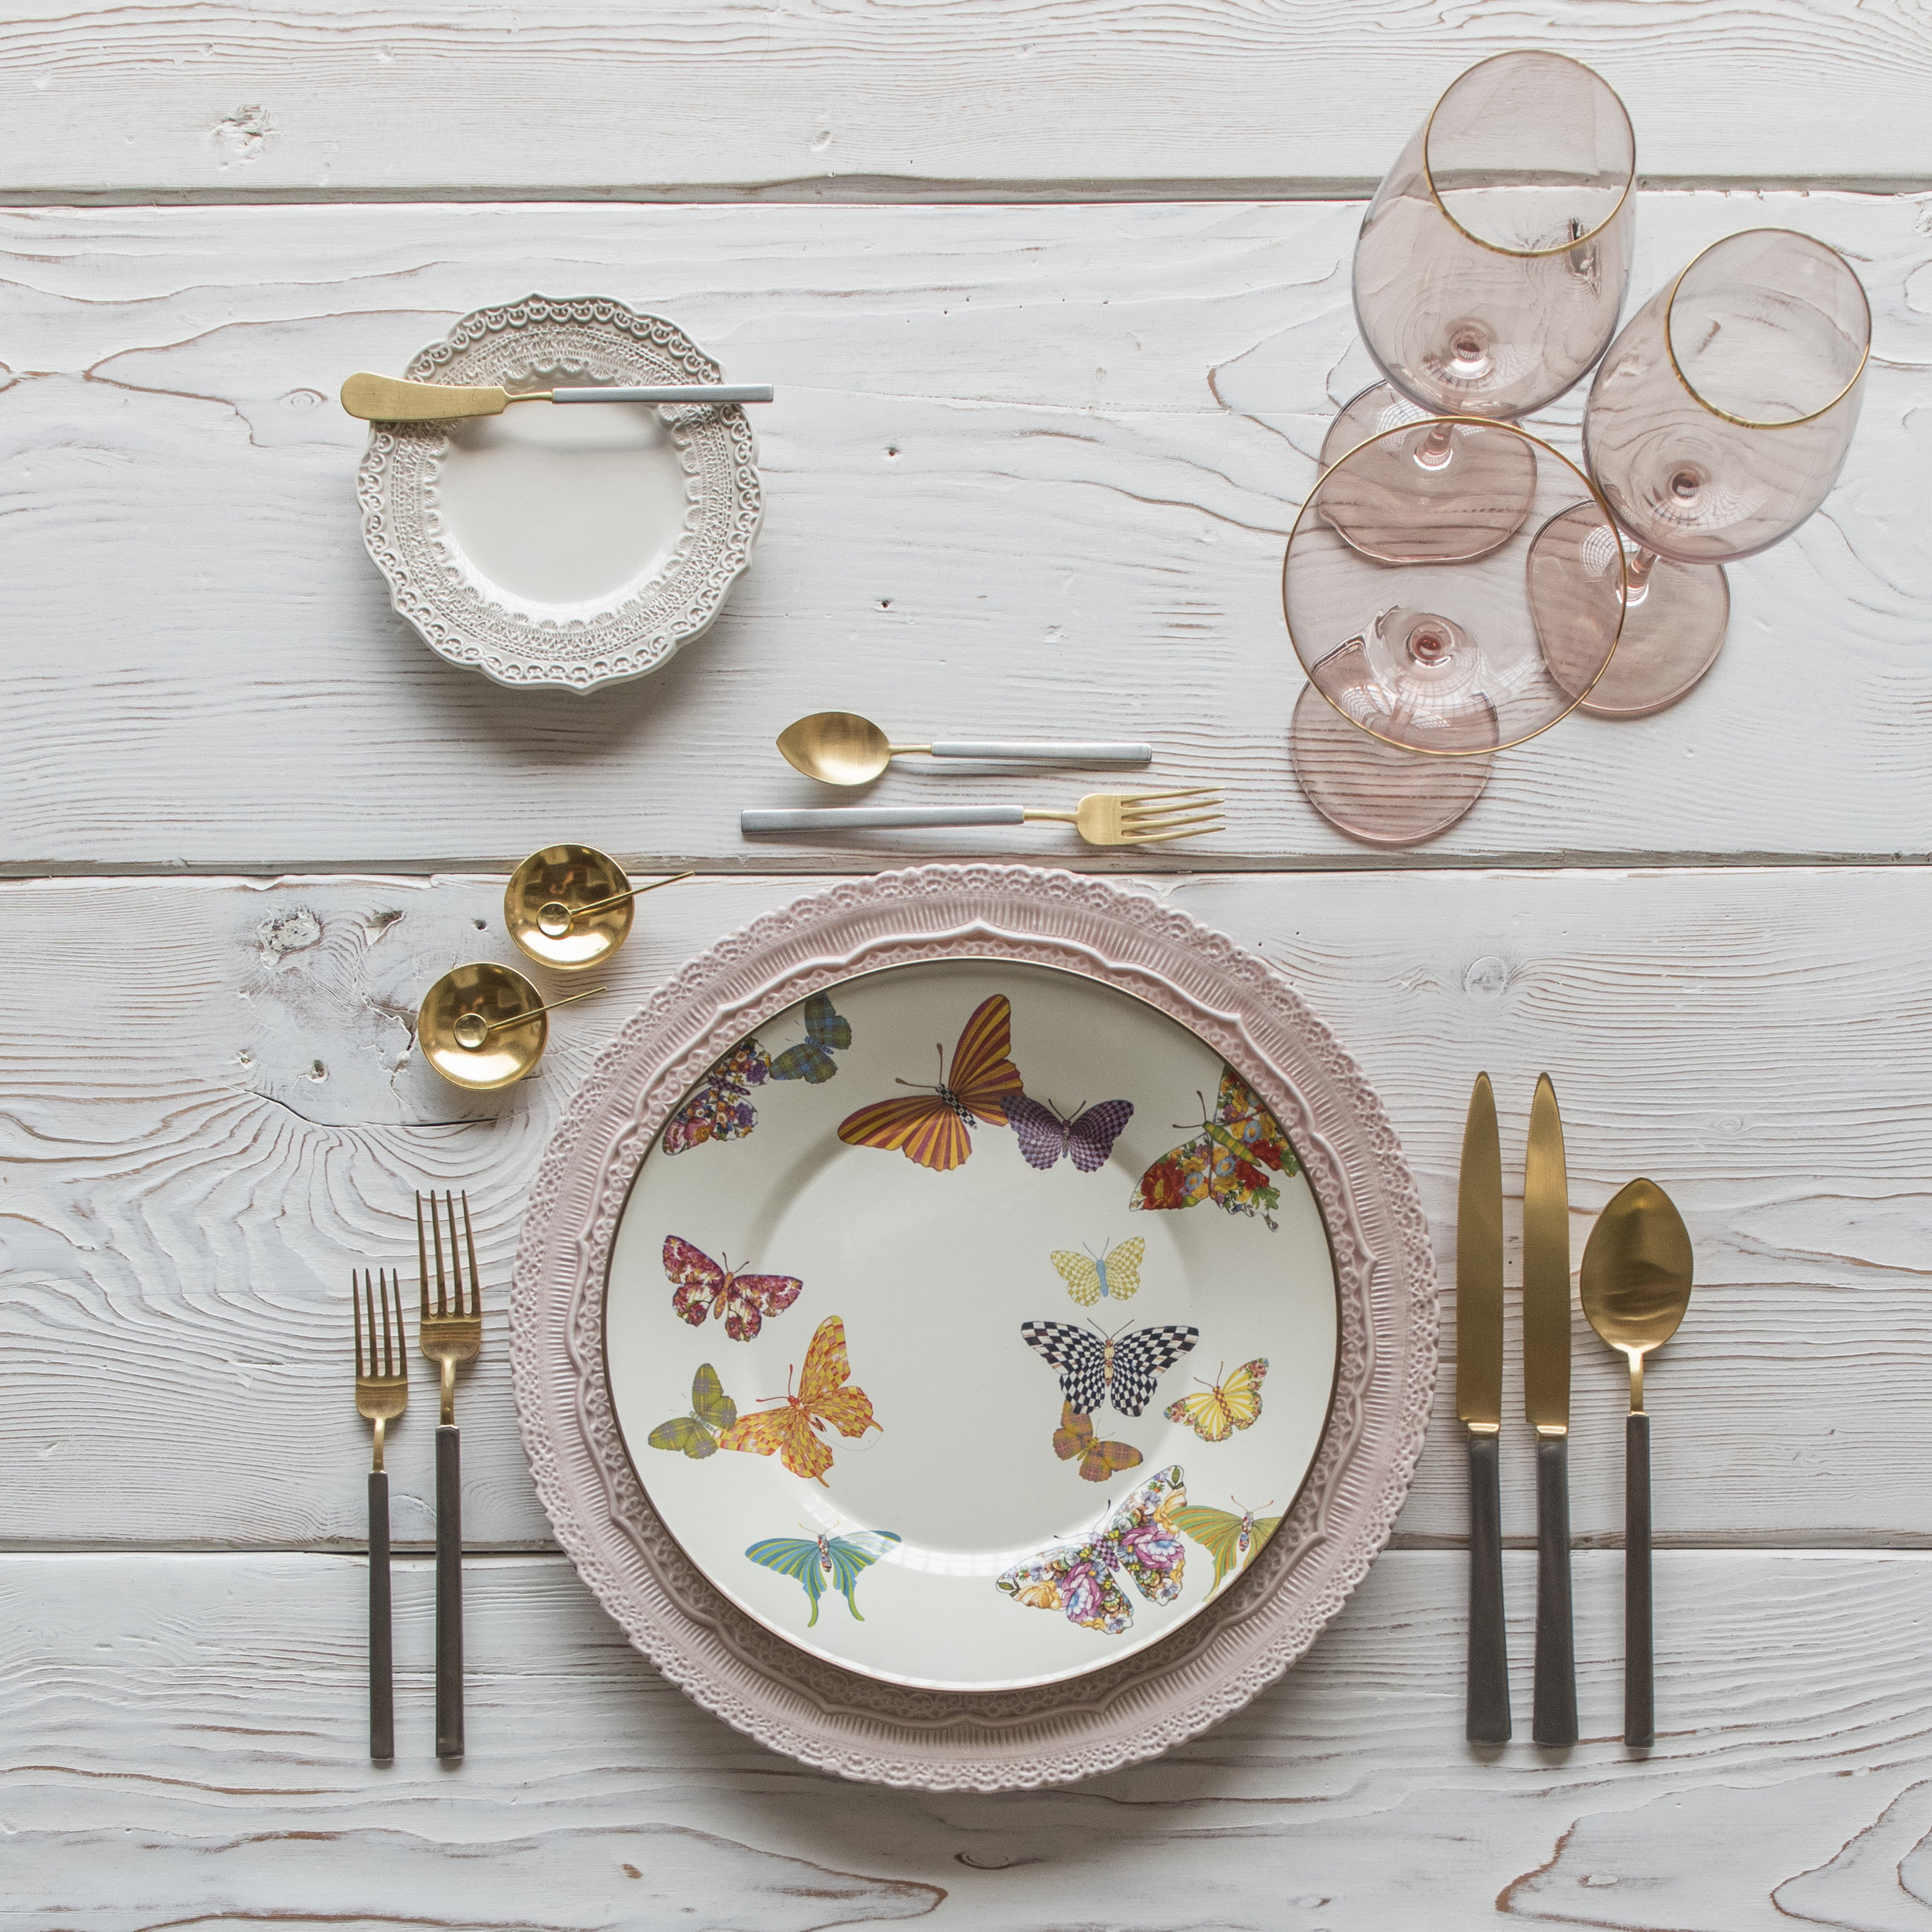 RENT: Lace Chargers in Blush + Lace Dinnerware in White + MacKenzie-Childs Butterfly Garden Collection + Axel Flatware in Matte 24k Gold/Silver + Bella 24k Gold Rimmed Stemware in Blush + 14k Gold Salt Cellars + Tiny Gold Spoons  SHOP:Bella 24k Gold Rimmed Stemware in Blush + 14k Gold Salt Cellars + Tiny Gold Spoons